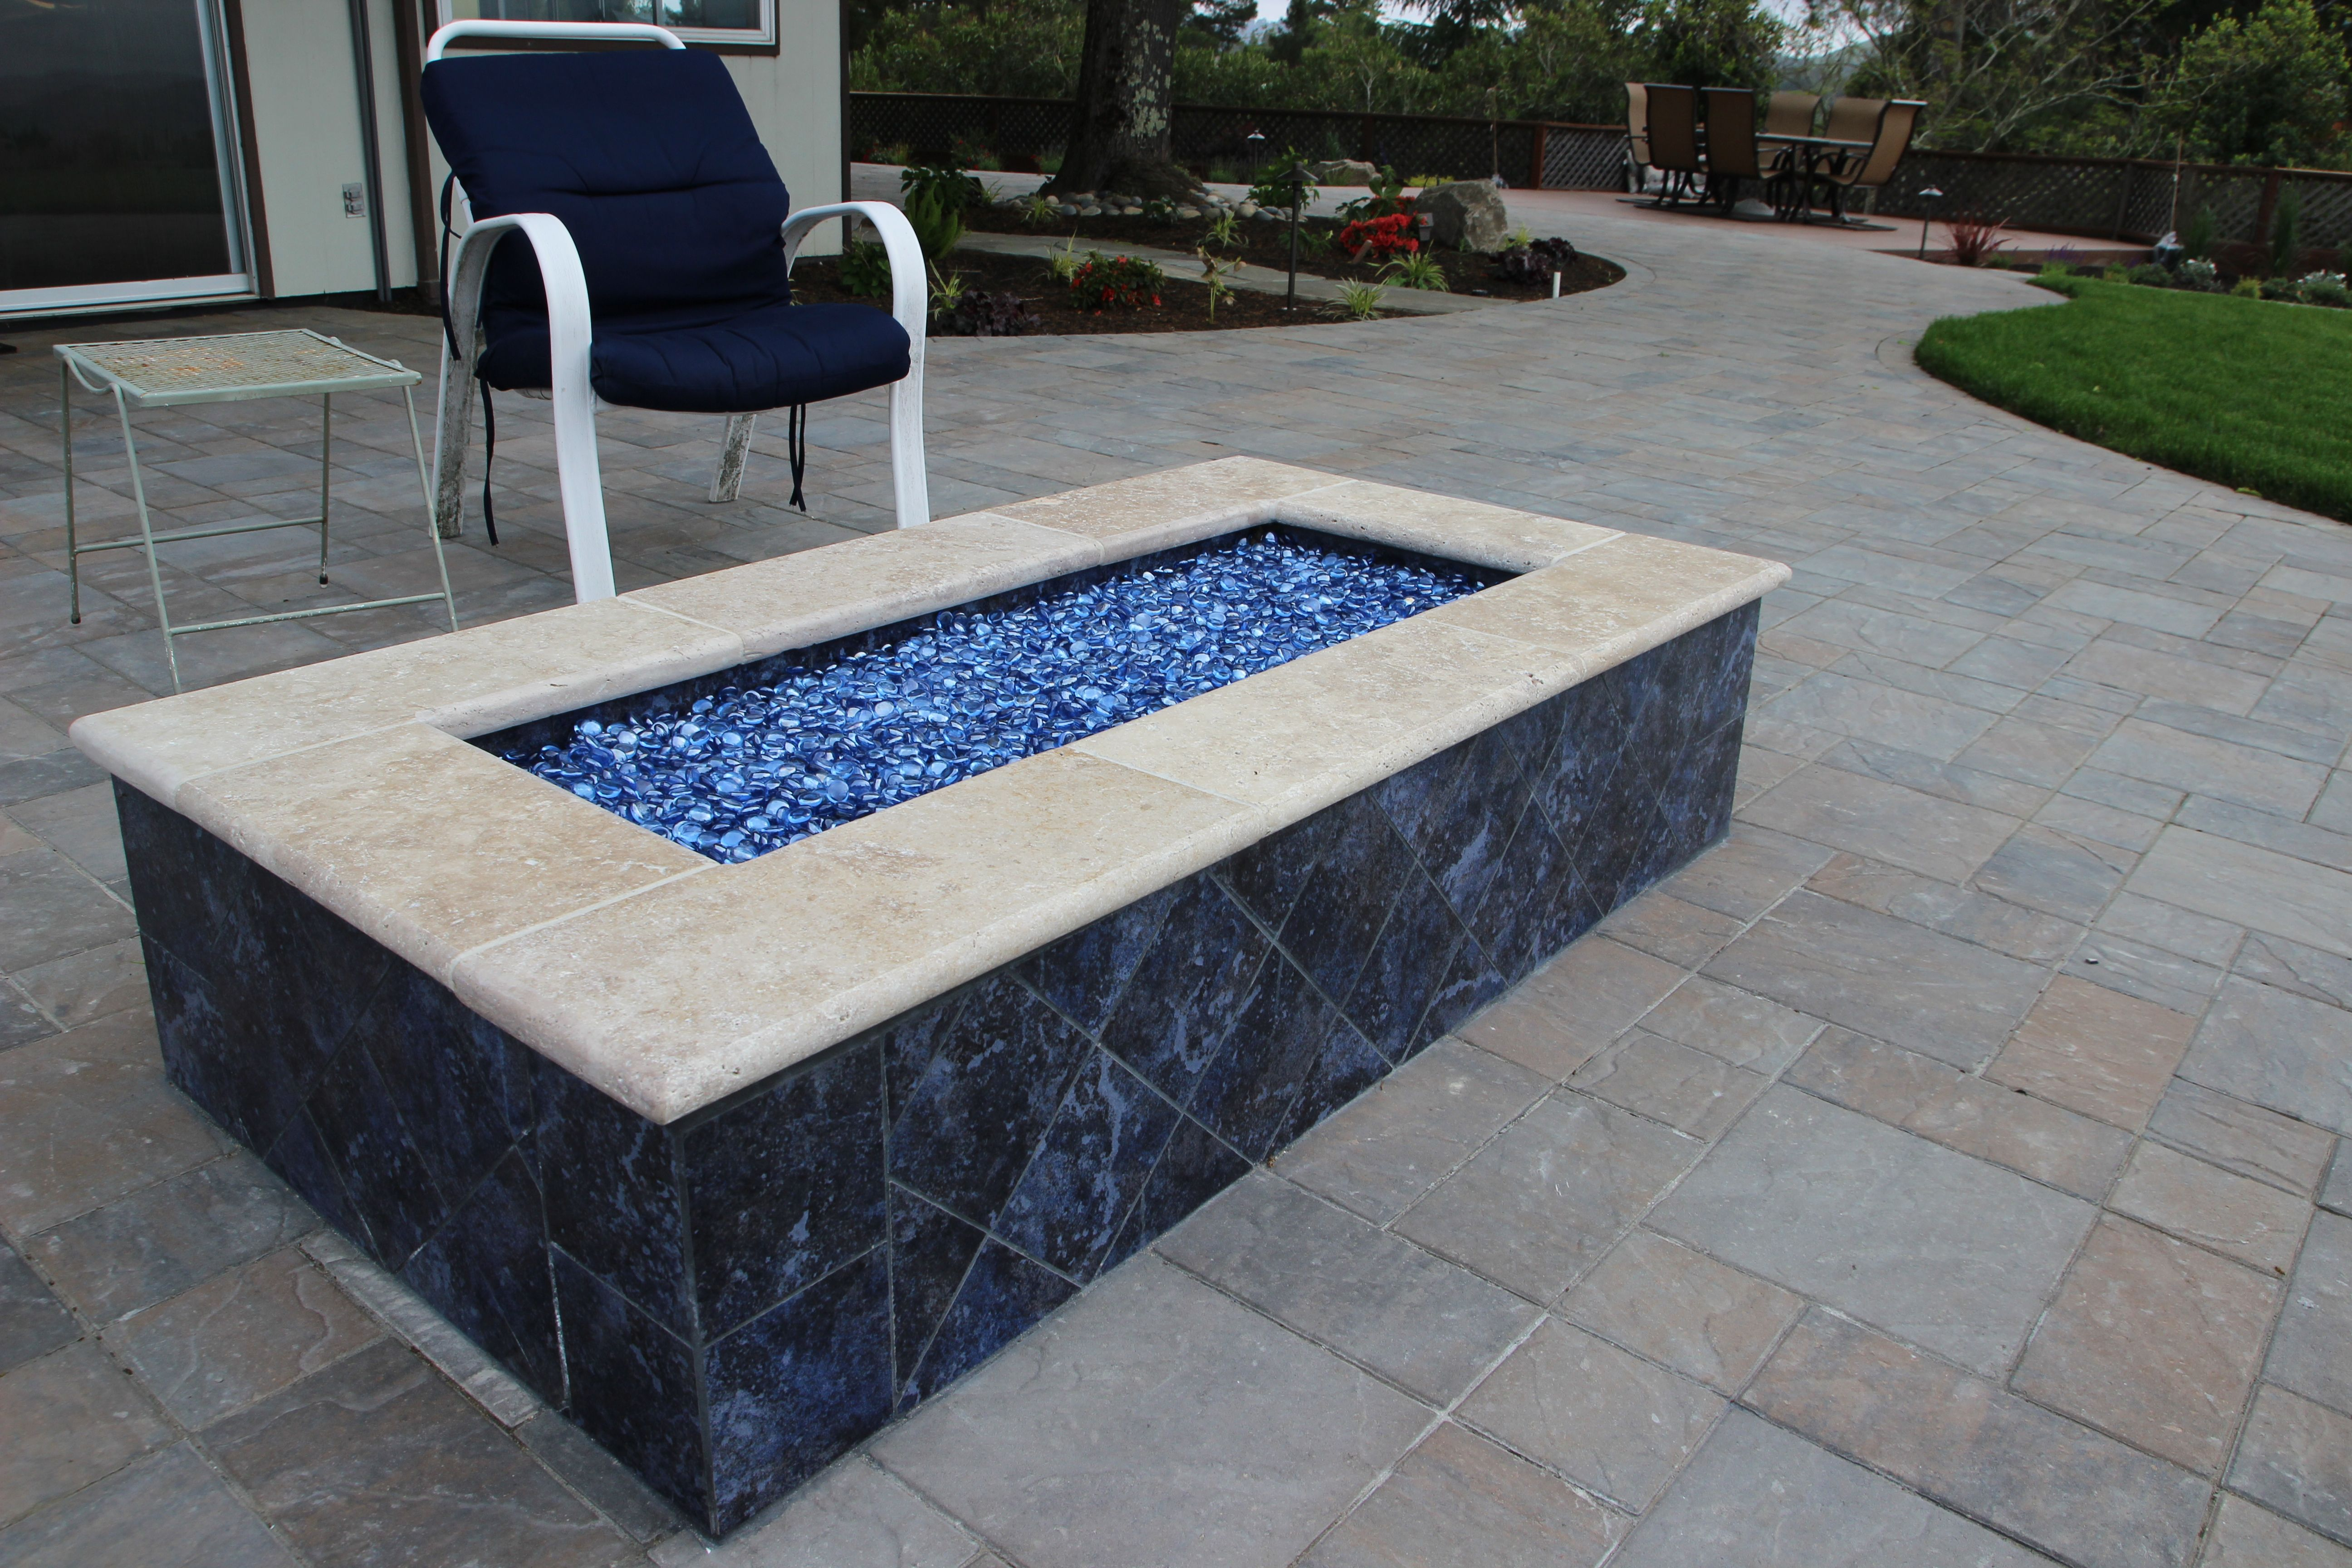 Rectangle Firepit With Blue Glass Glass Fire Pit Fire Pit Decor Modern Fire Pit